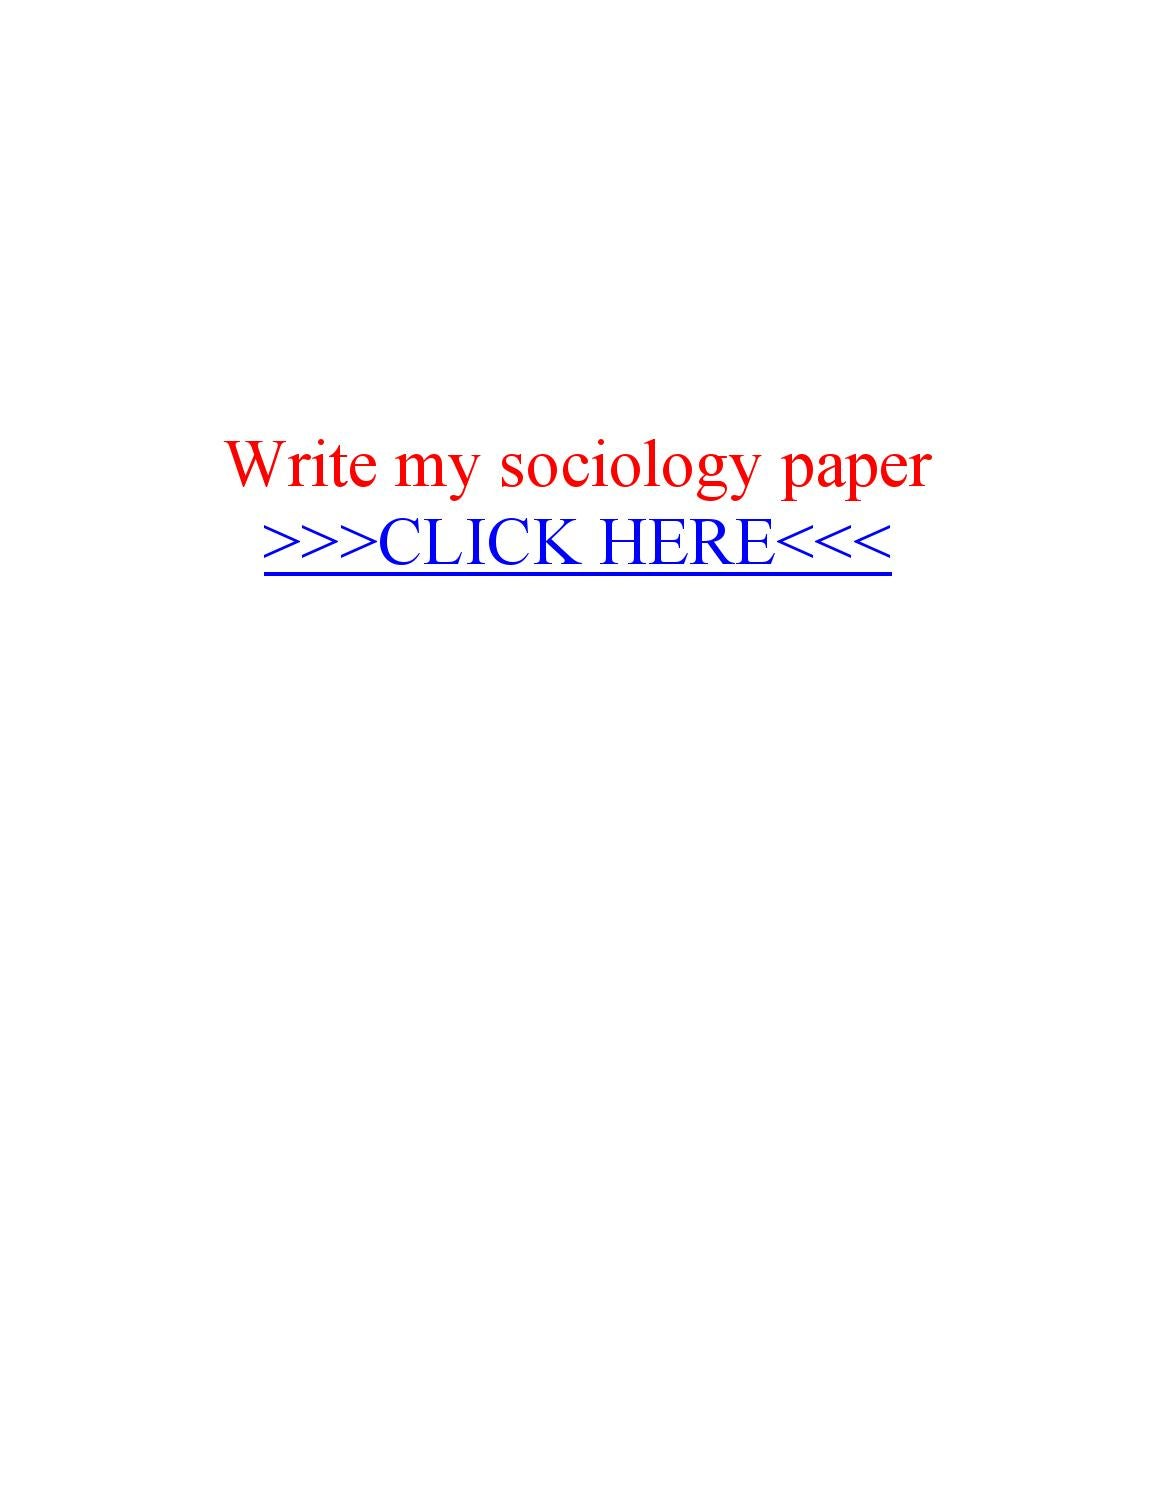 Write my sociology paper